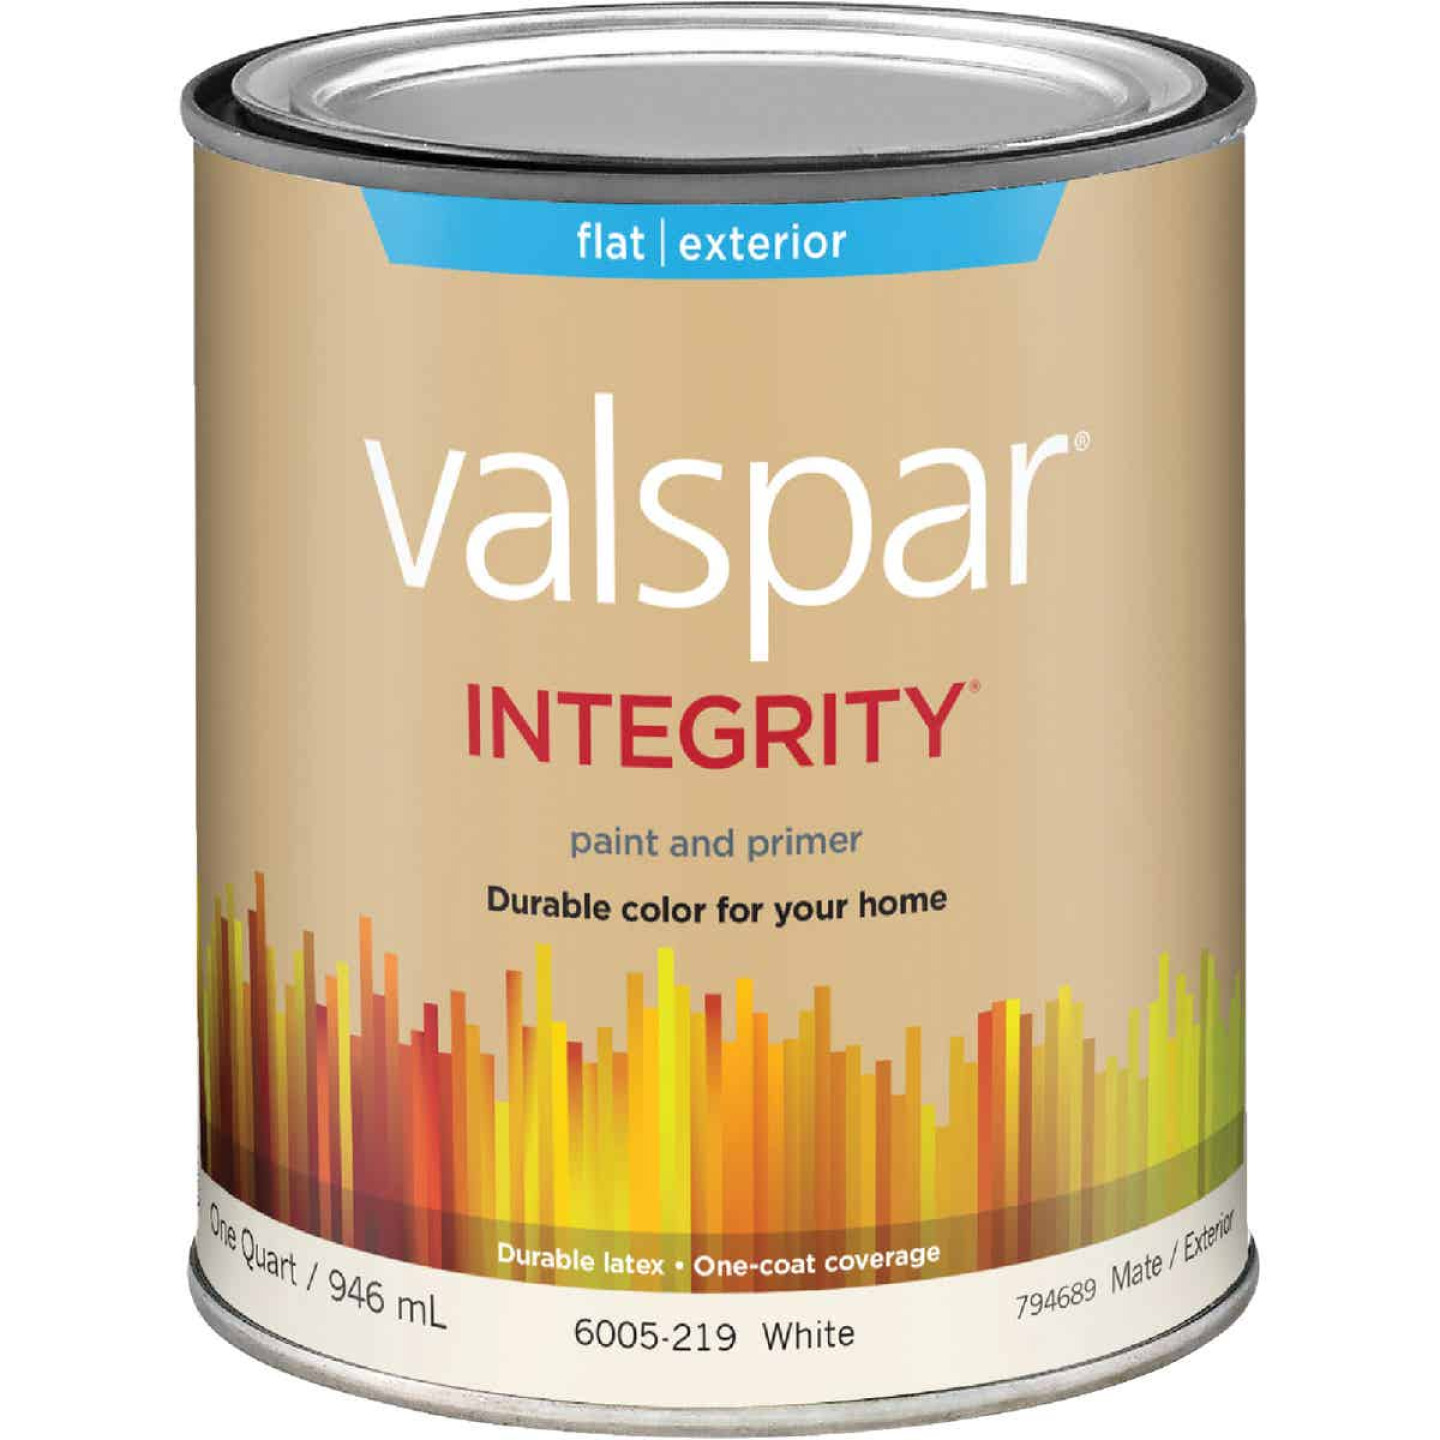 Valspar Integrity Latex Paint And Primer Flat Exterior House Paint, White, 1 Qt. Image 1